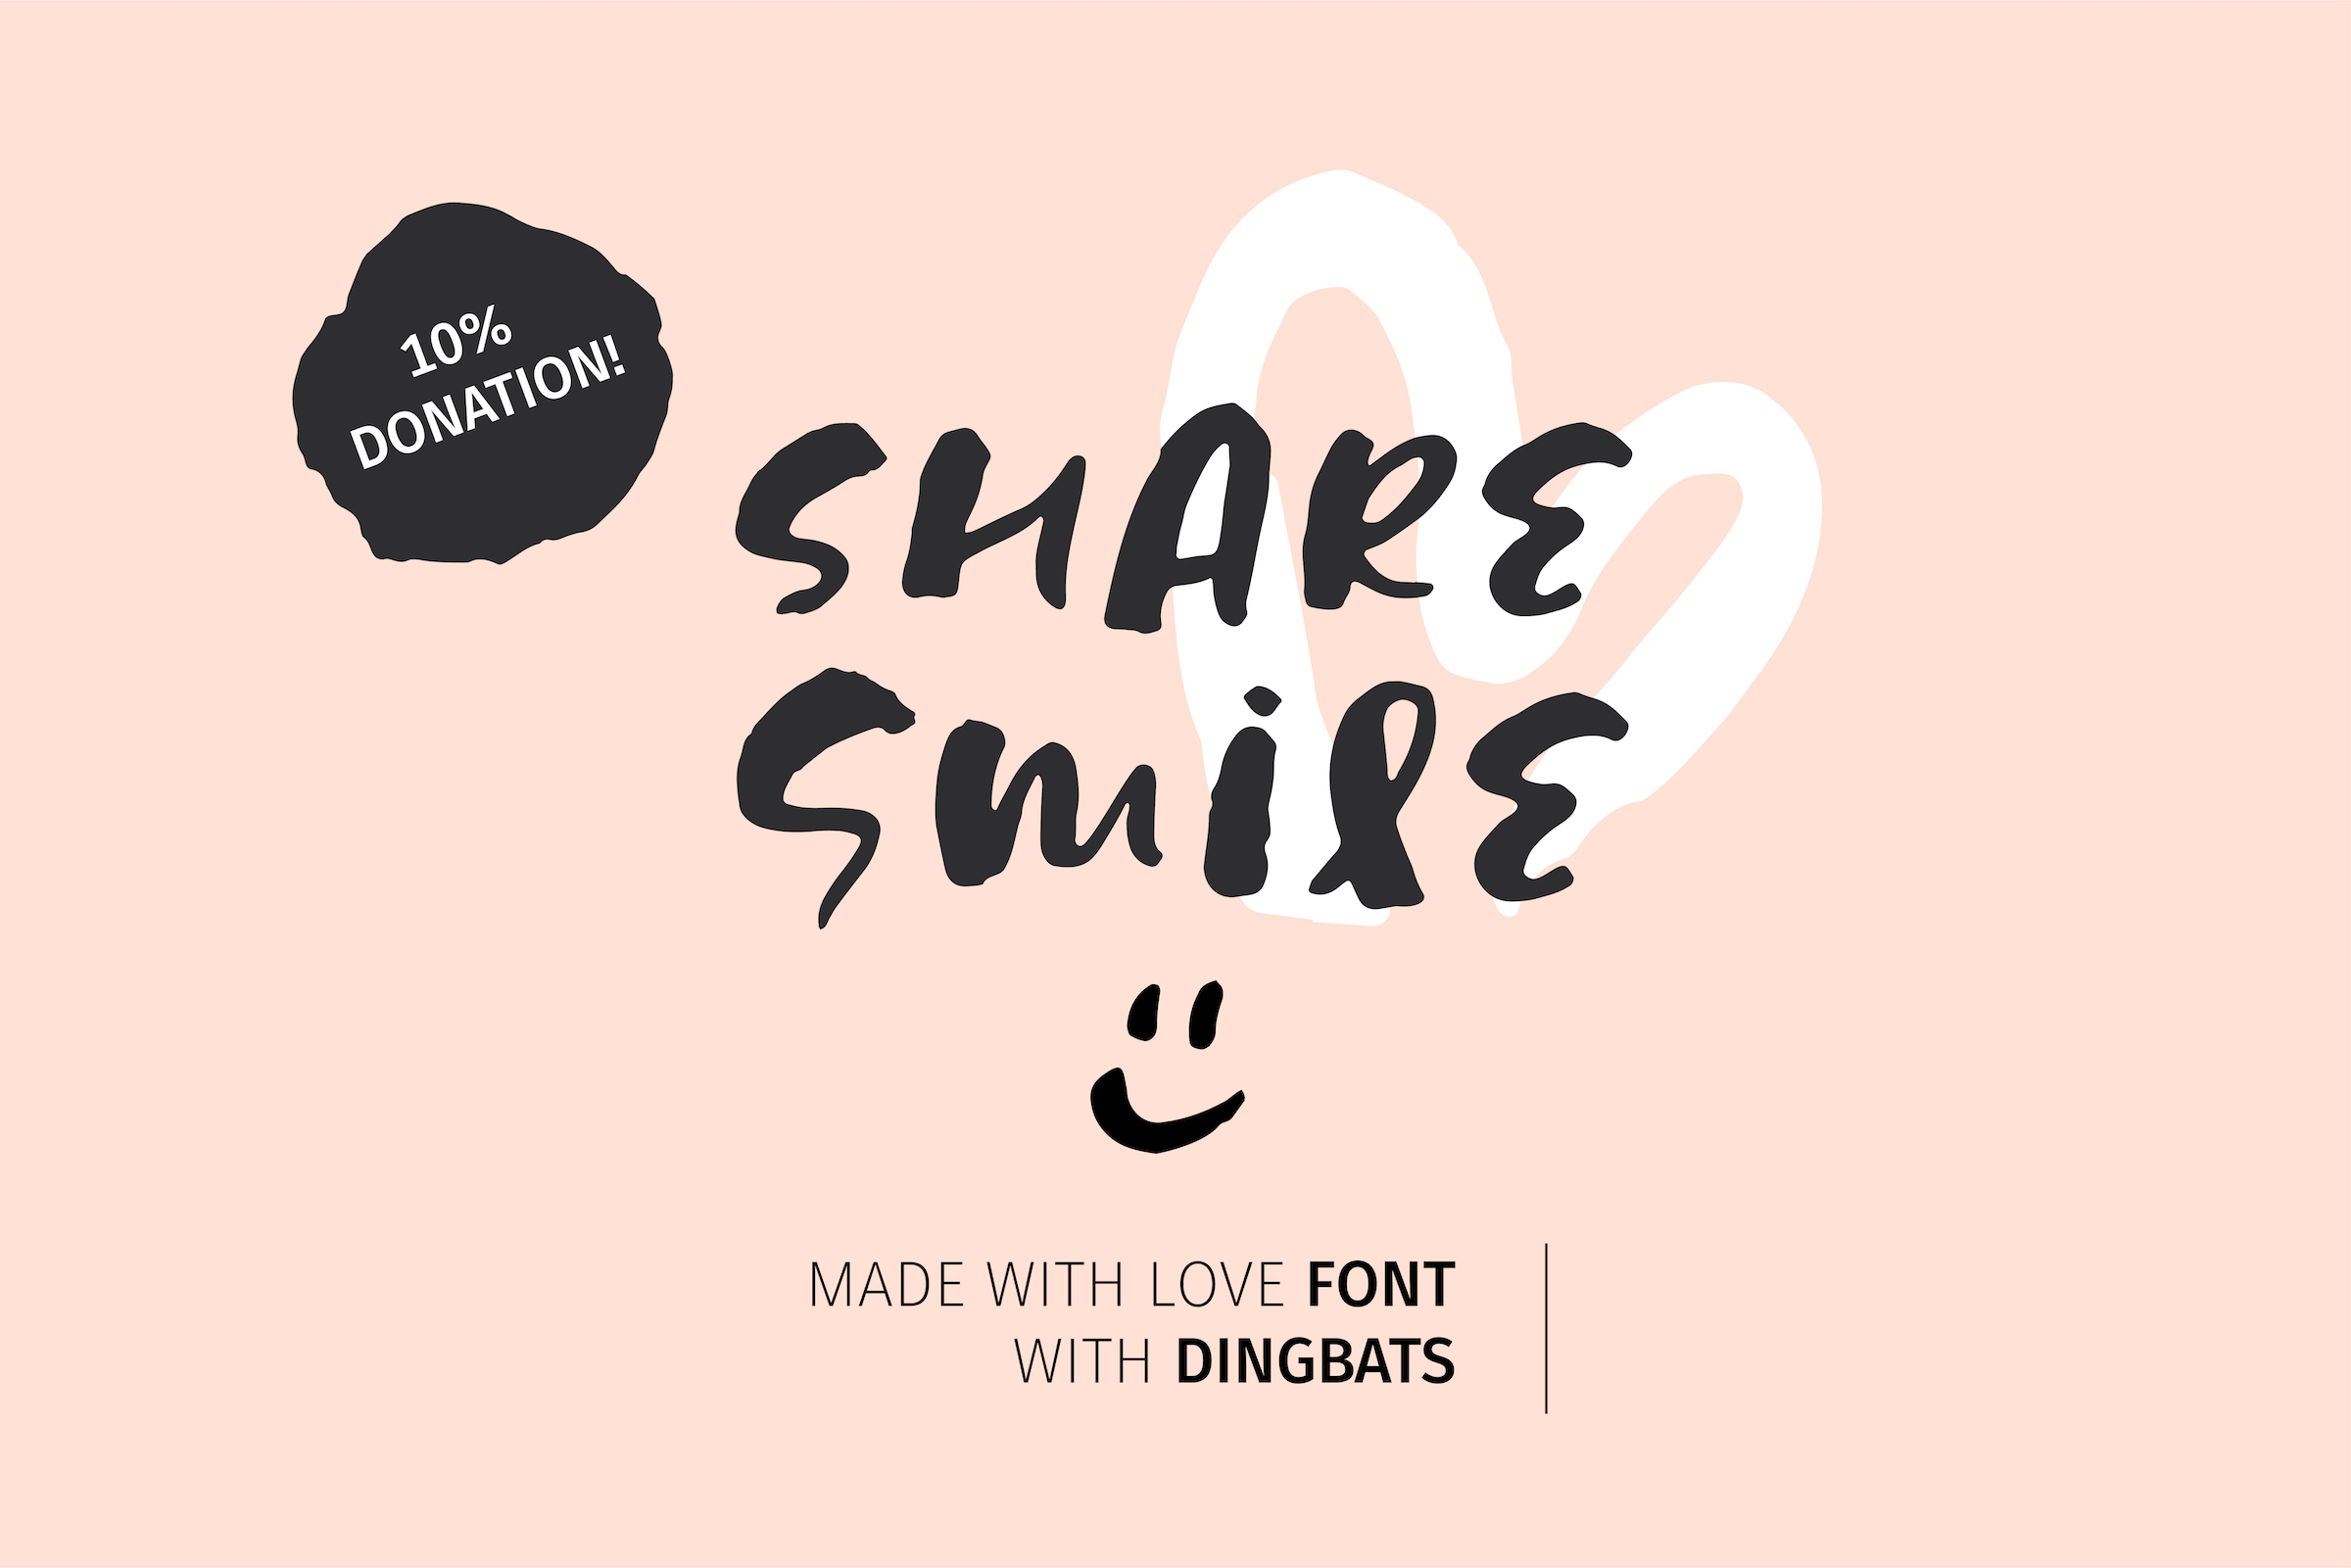 Share Smile - Brush Font Dingbats example image 1